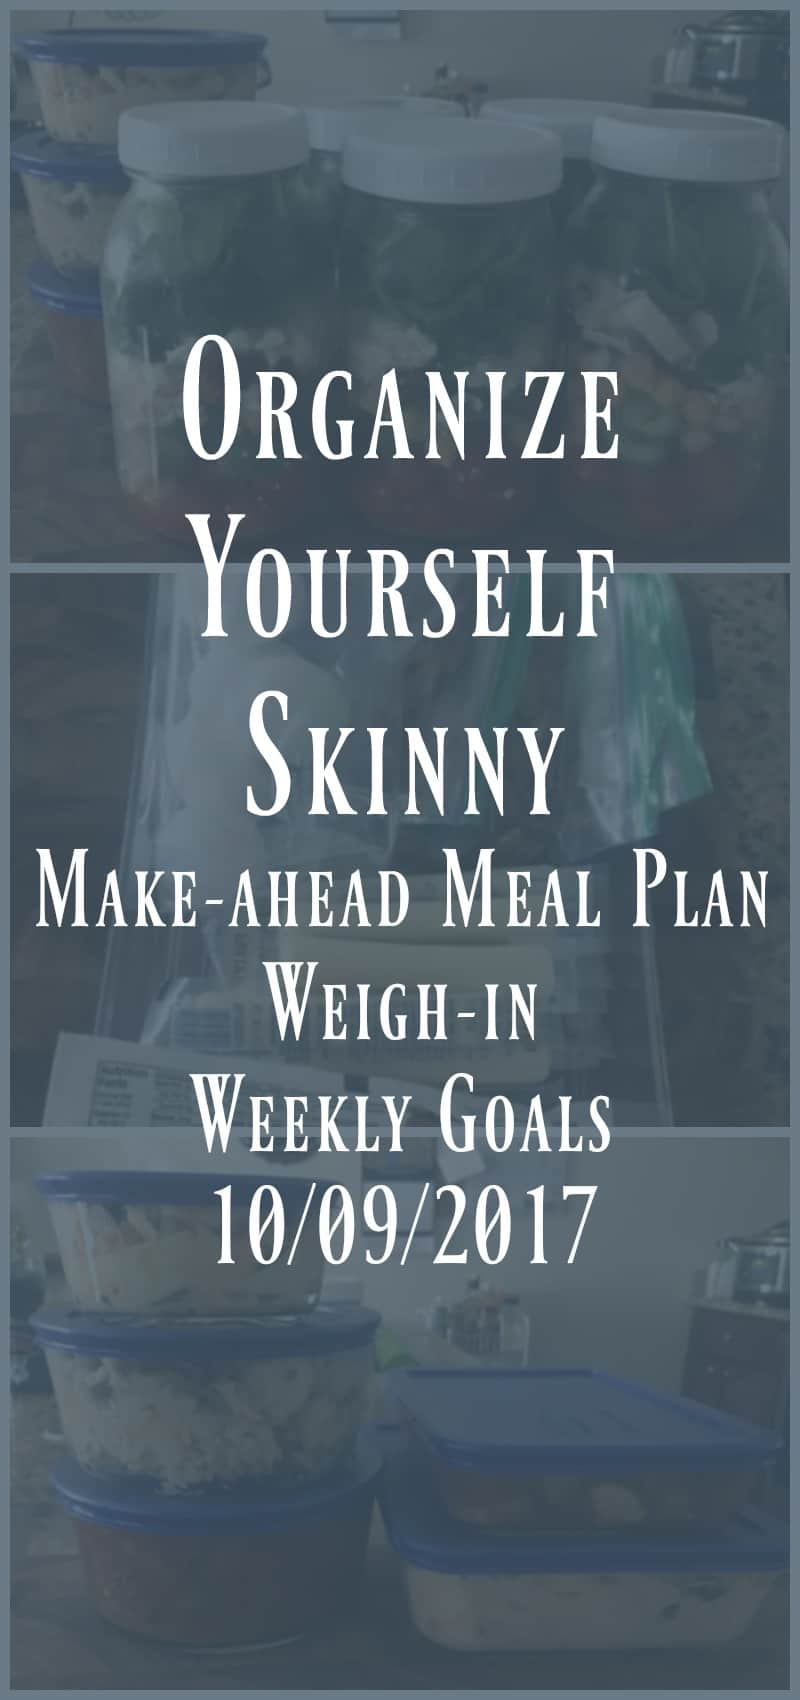 Make-ahead Meal Plan Weigh-in, and Weekly Goals